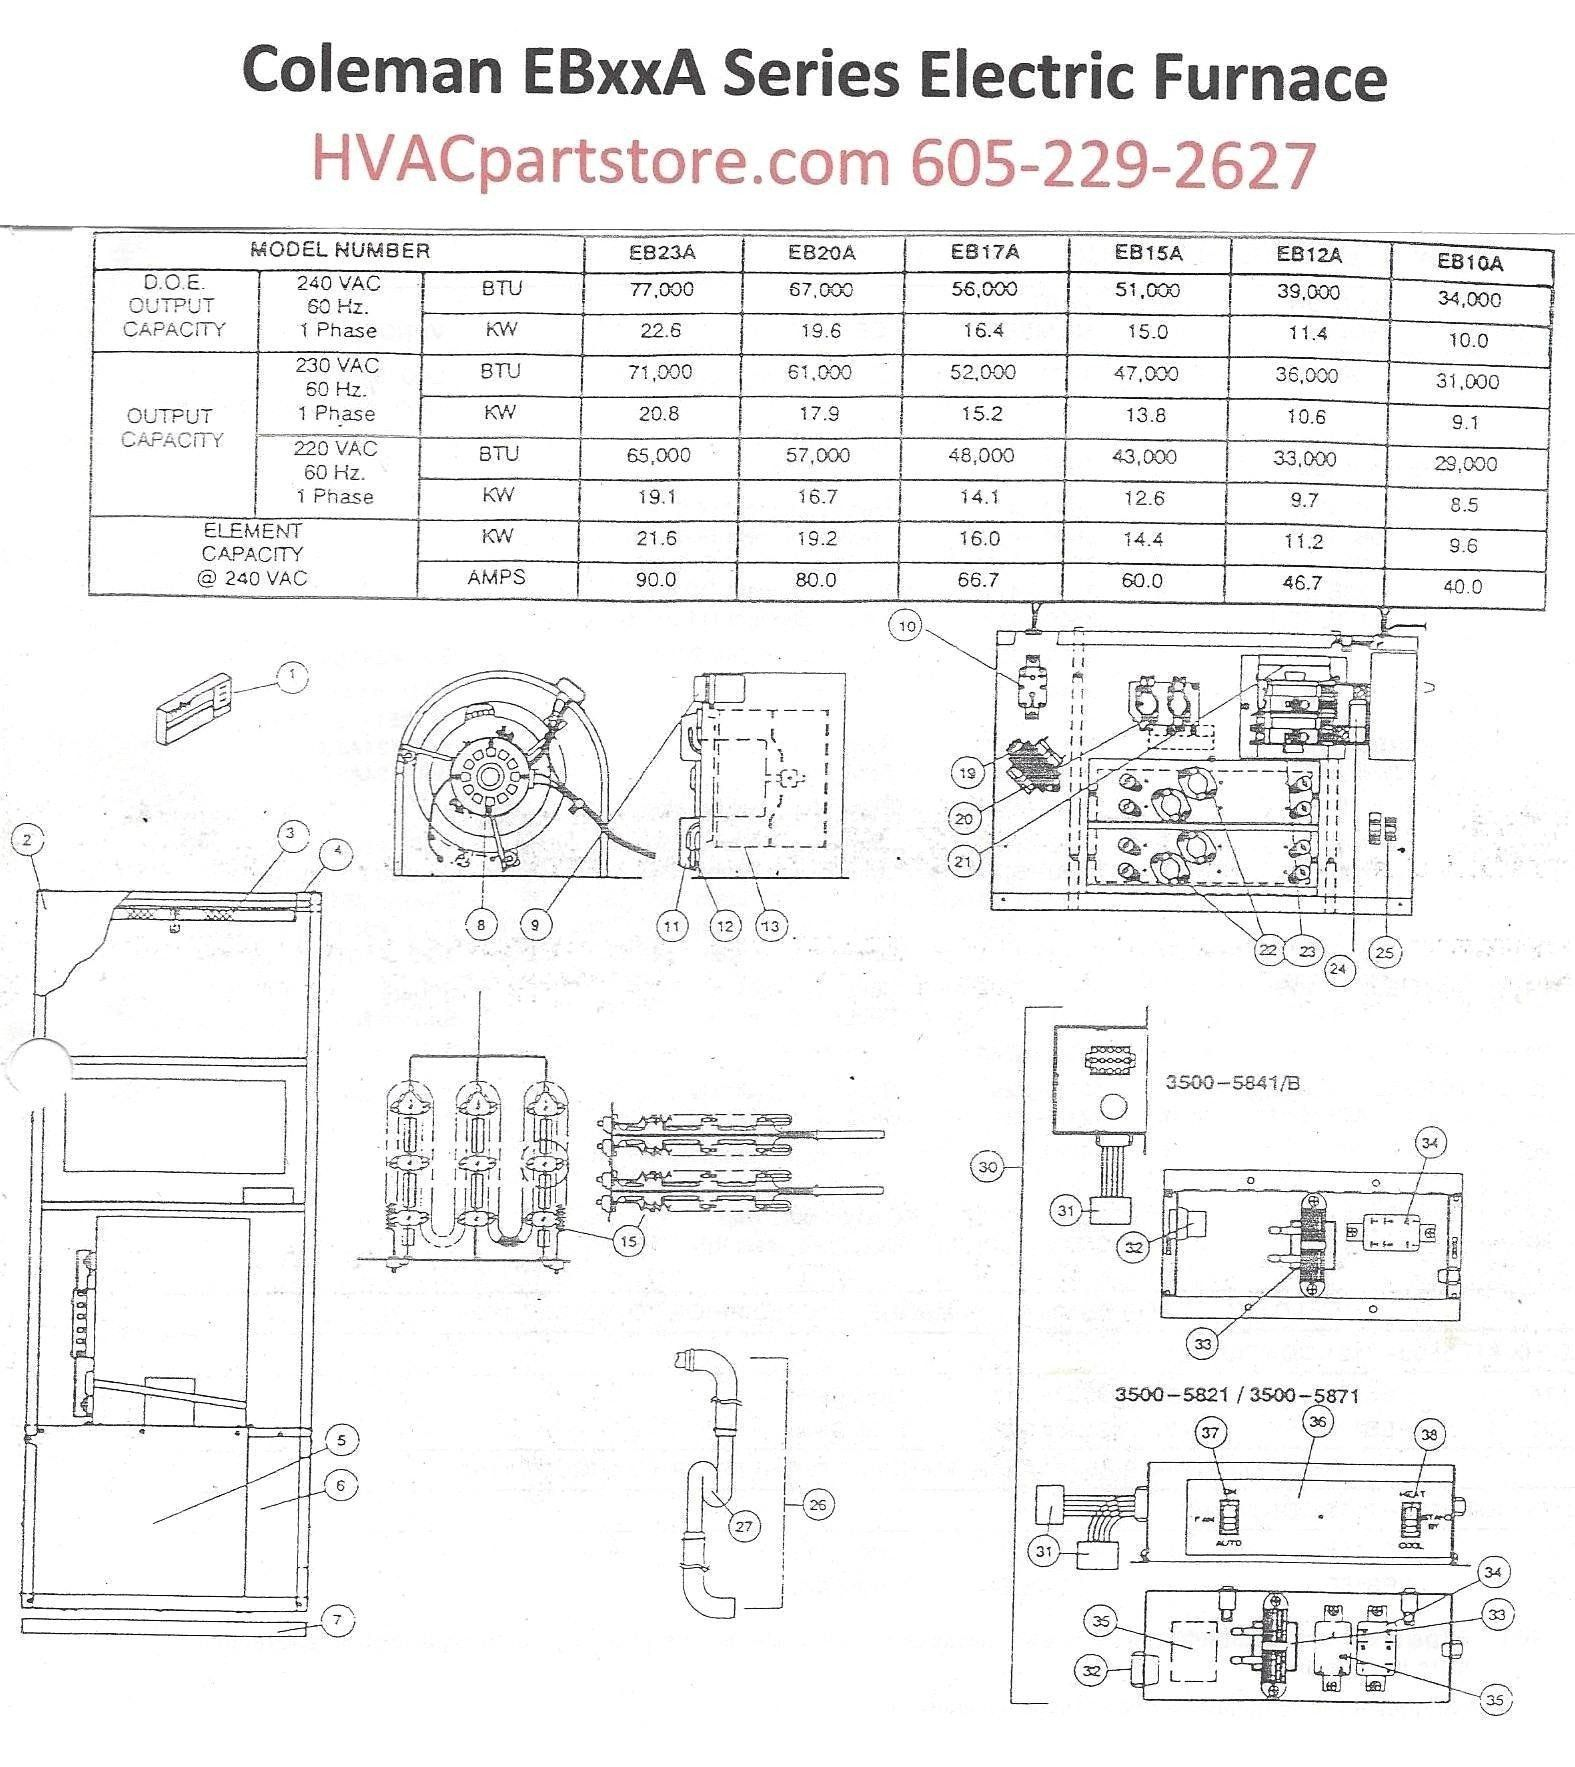 Rv Ac Wiring Diagram 5 Pin Led Flasher Relay Coleman Diagrams Manual E Books Air Conditioner Inspirational Machcoleman Mach Pertaining